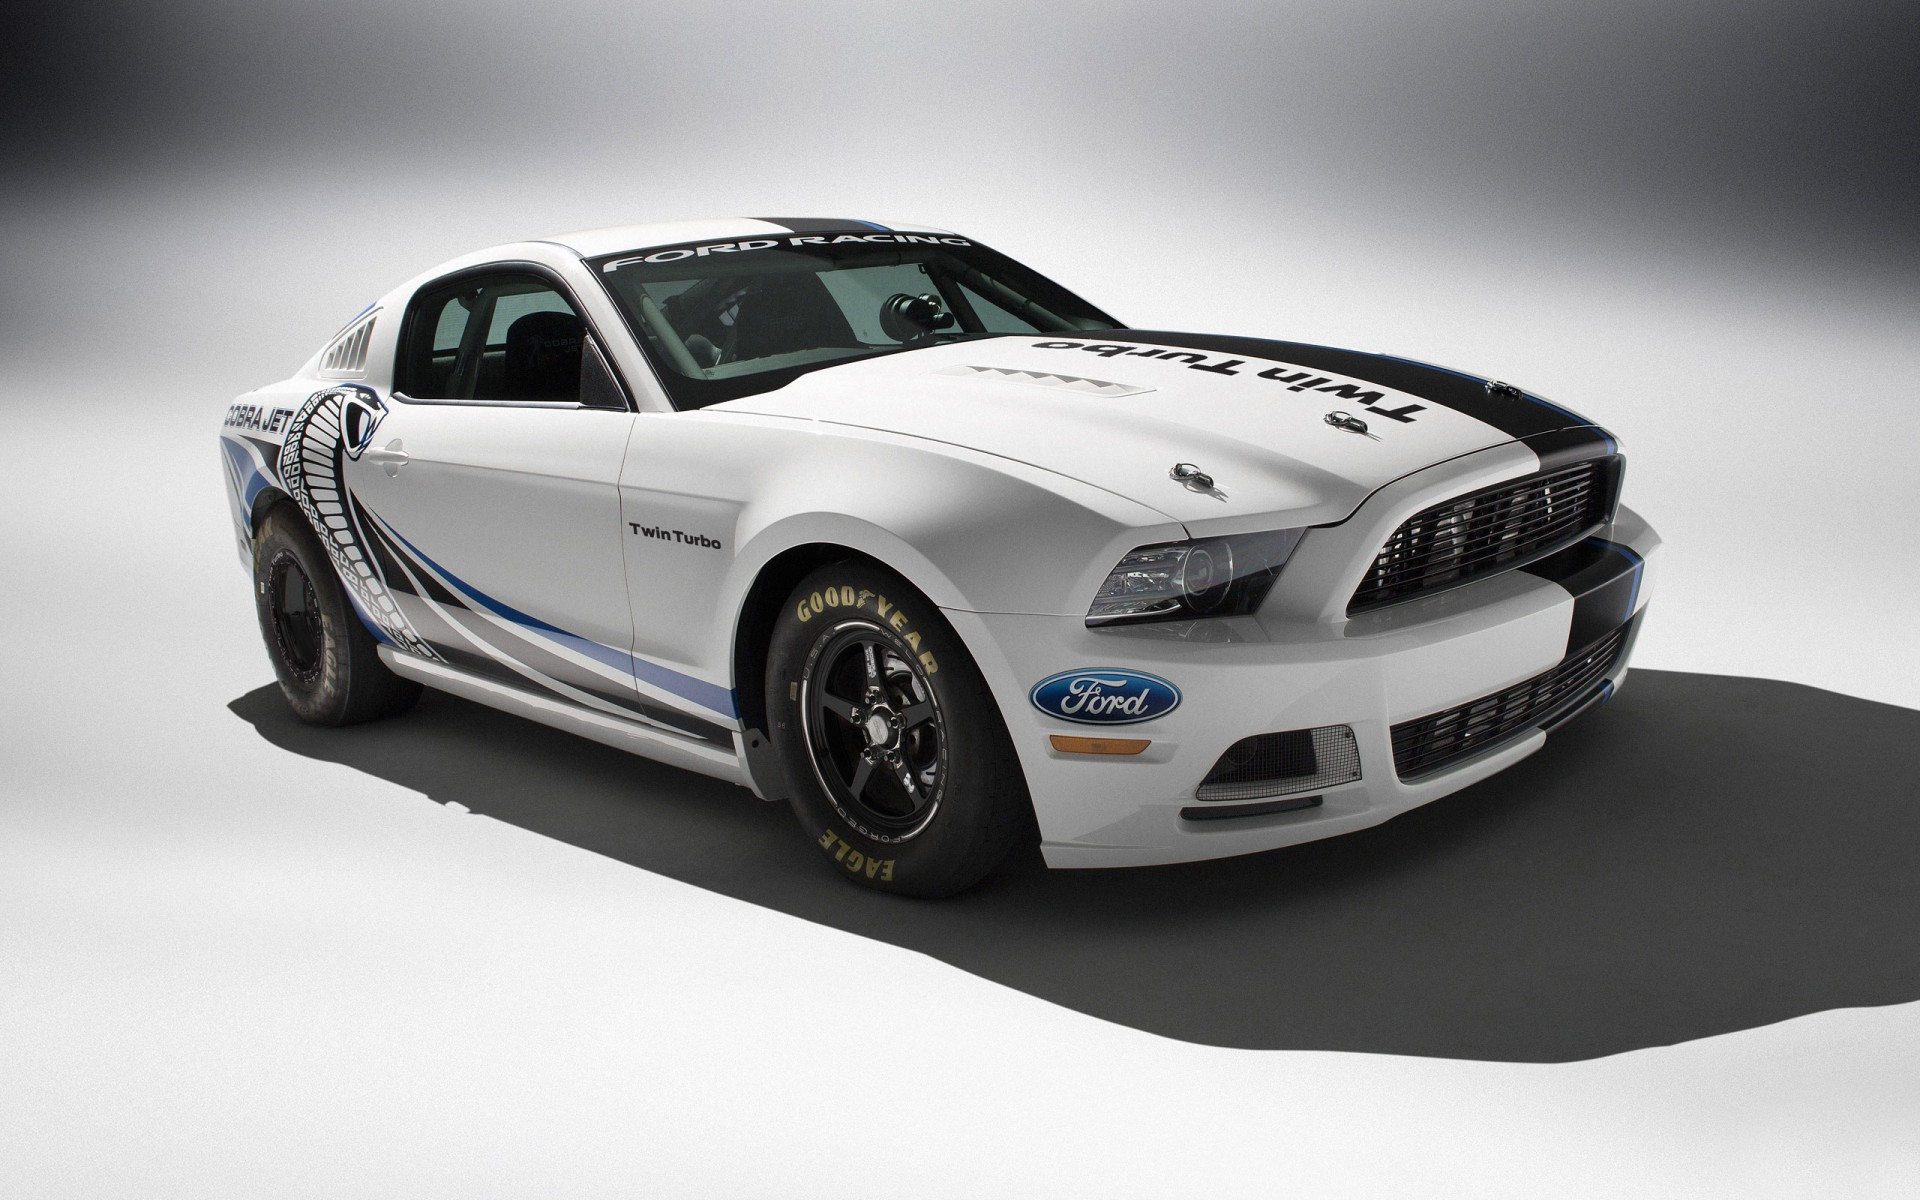 Ford Mustang Cobra Jet Twin Turbo Concept Wallpaper Hd